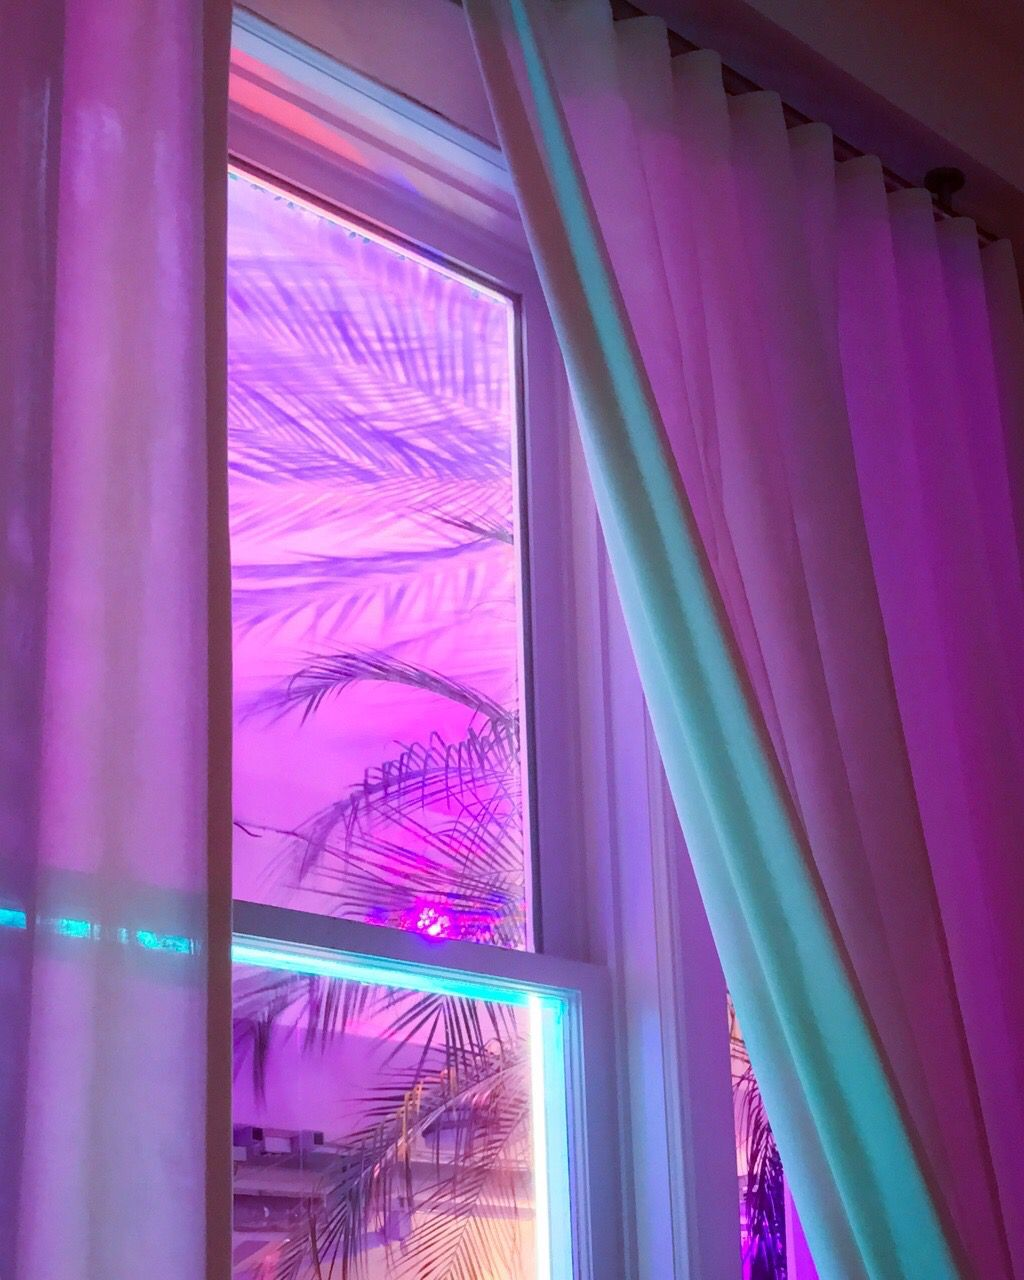 Pin by Queen Lasaga on Aesthetic Interiors Neon aesthetic 1024x1280